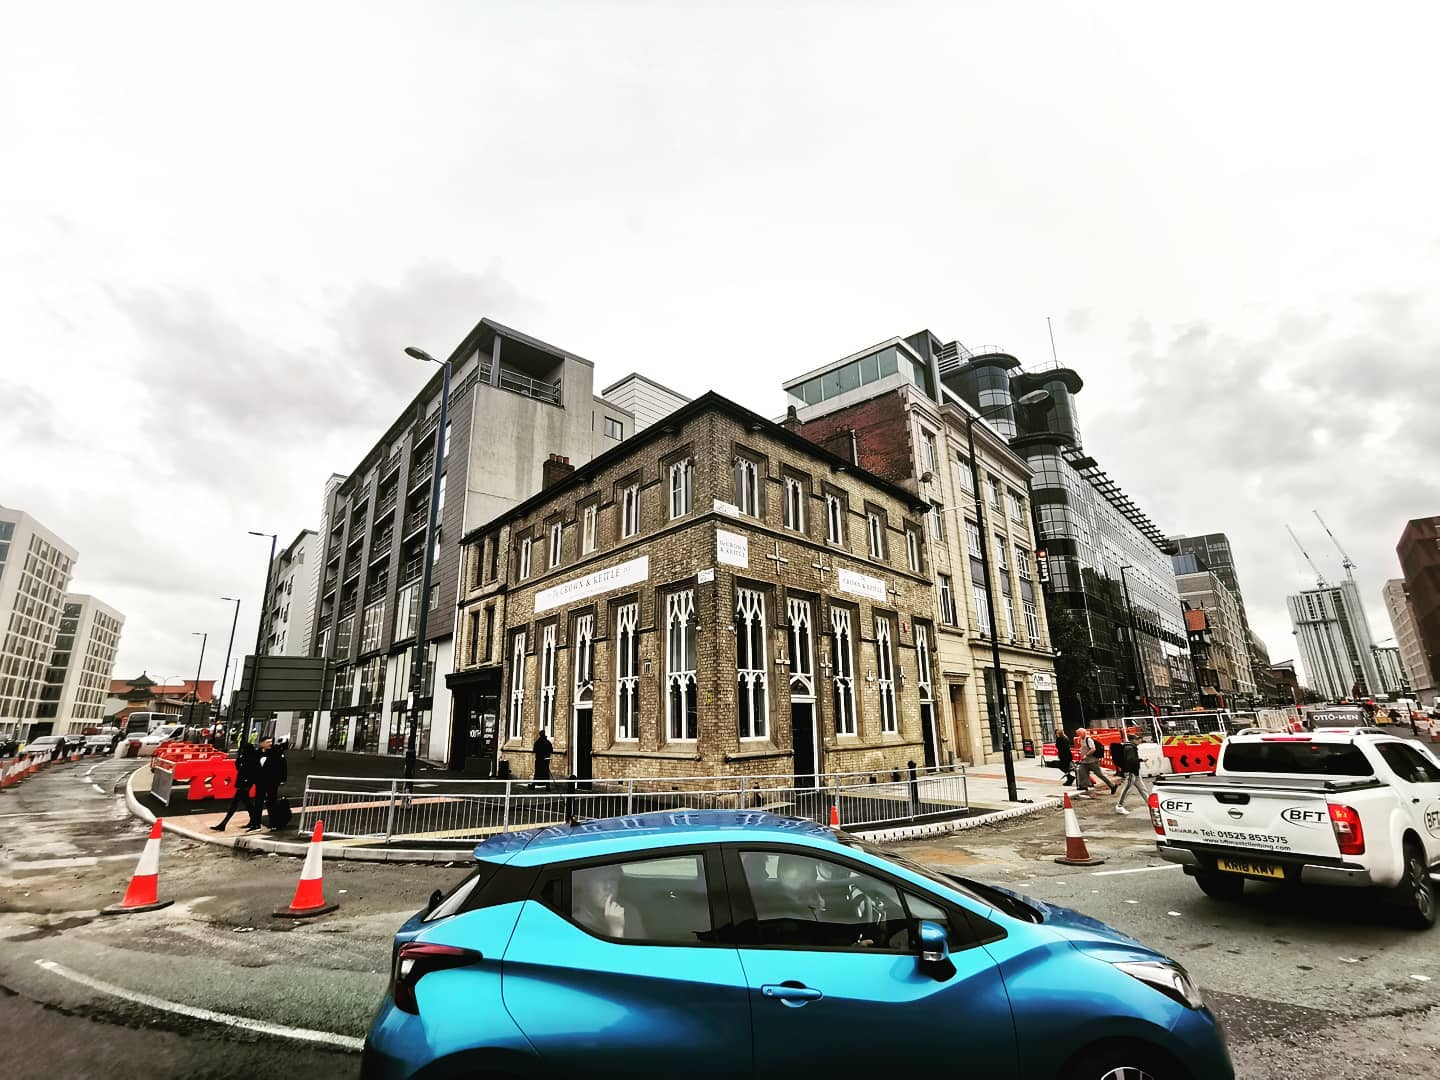 One of Manchester's oldest and most famous pubs has been completely refurbished, The Manc